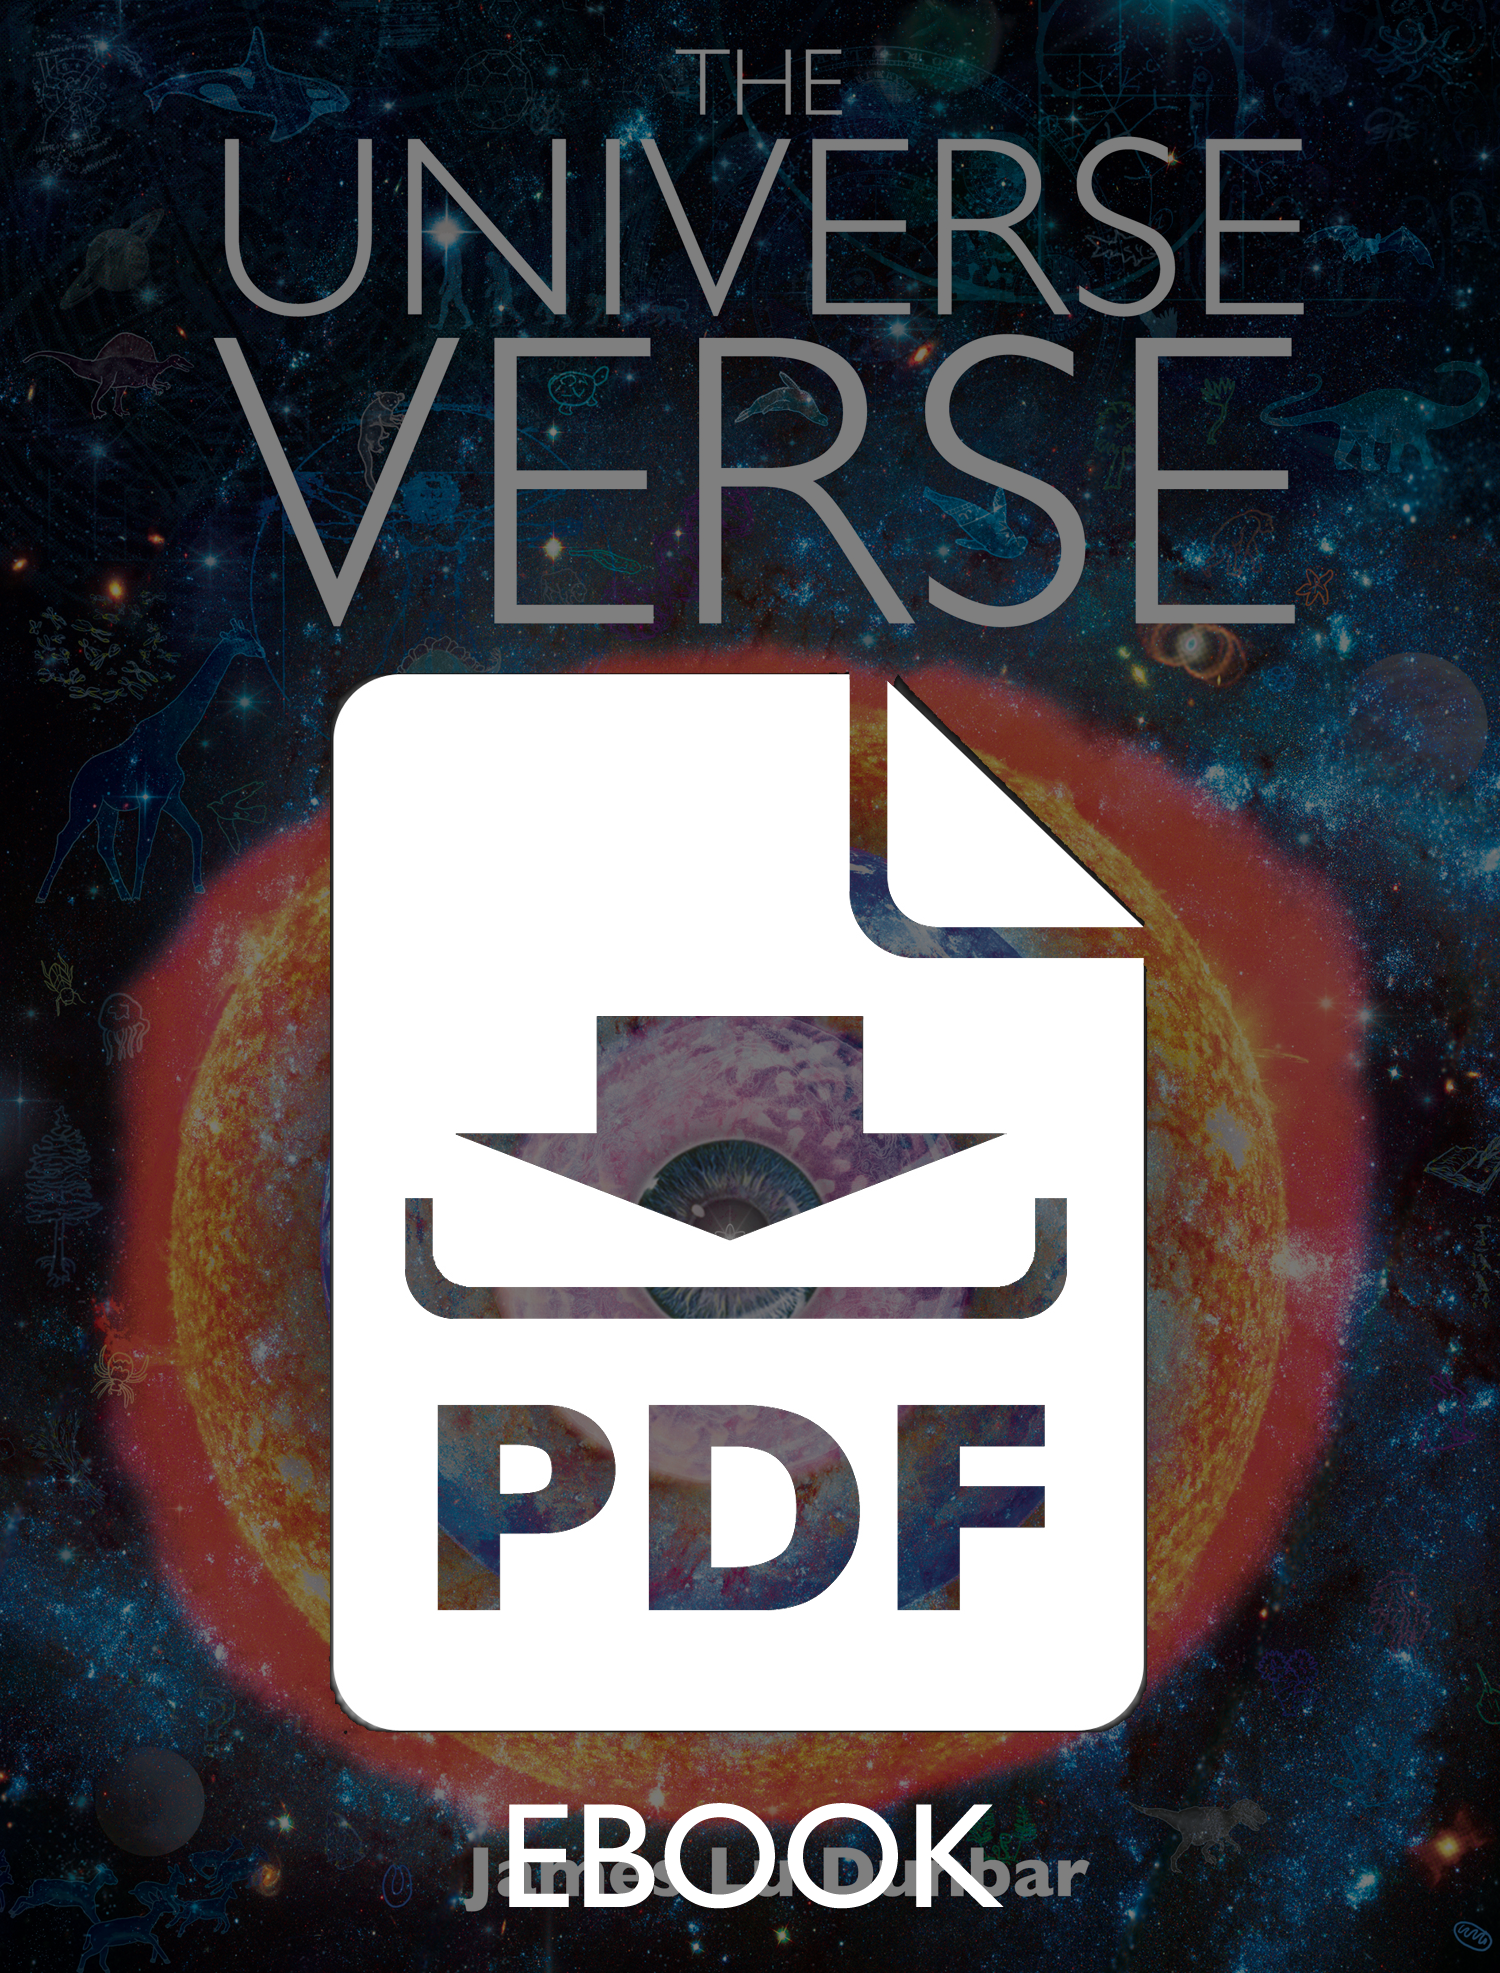 you are the universe book pdf free download